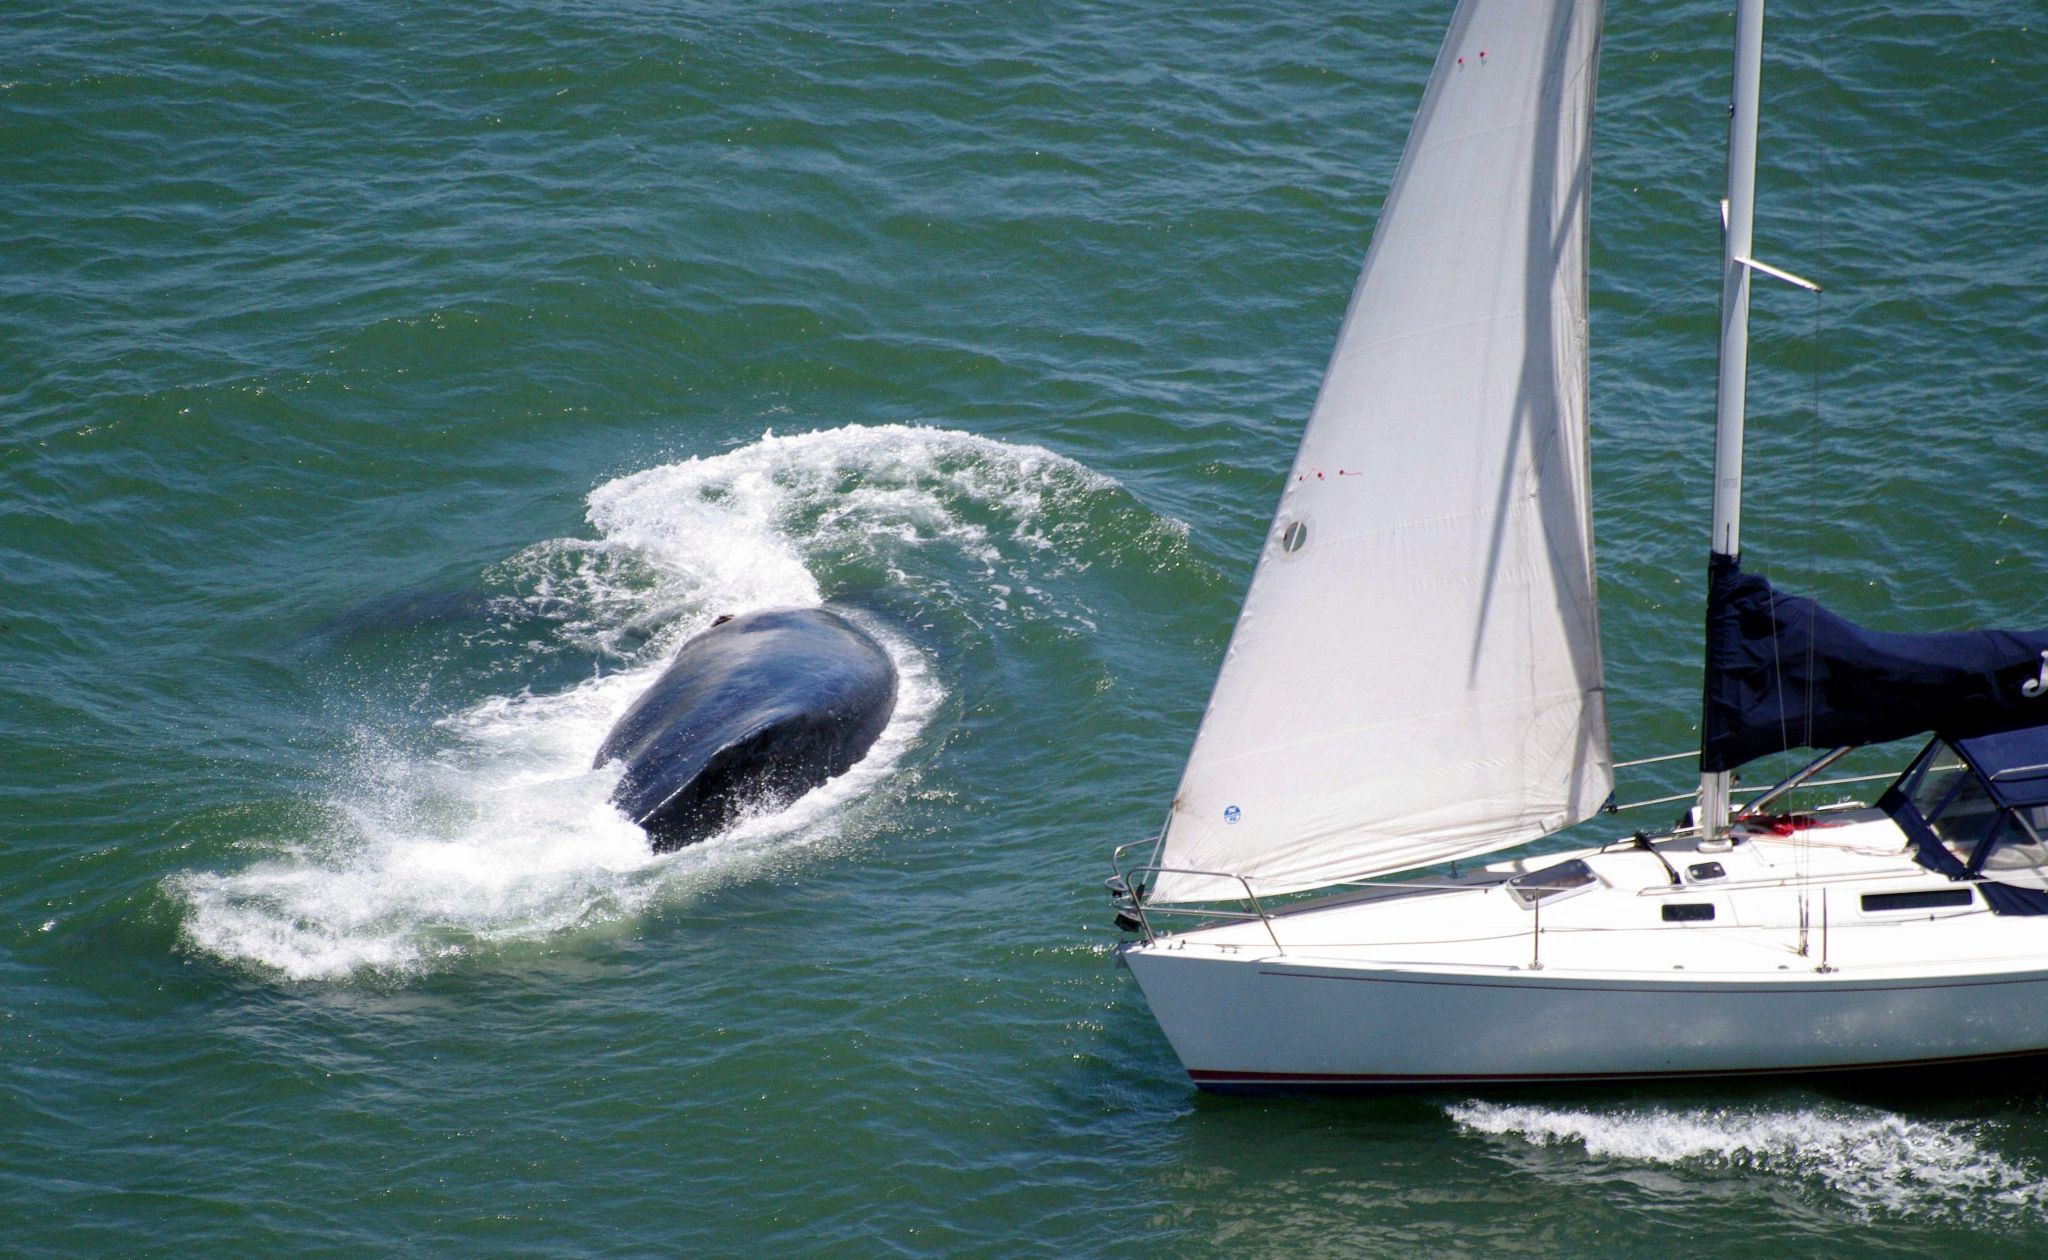 Whale barely dodges oncoming sailboat near Golden Gate Bridge - SFGate